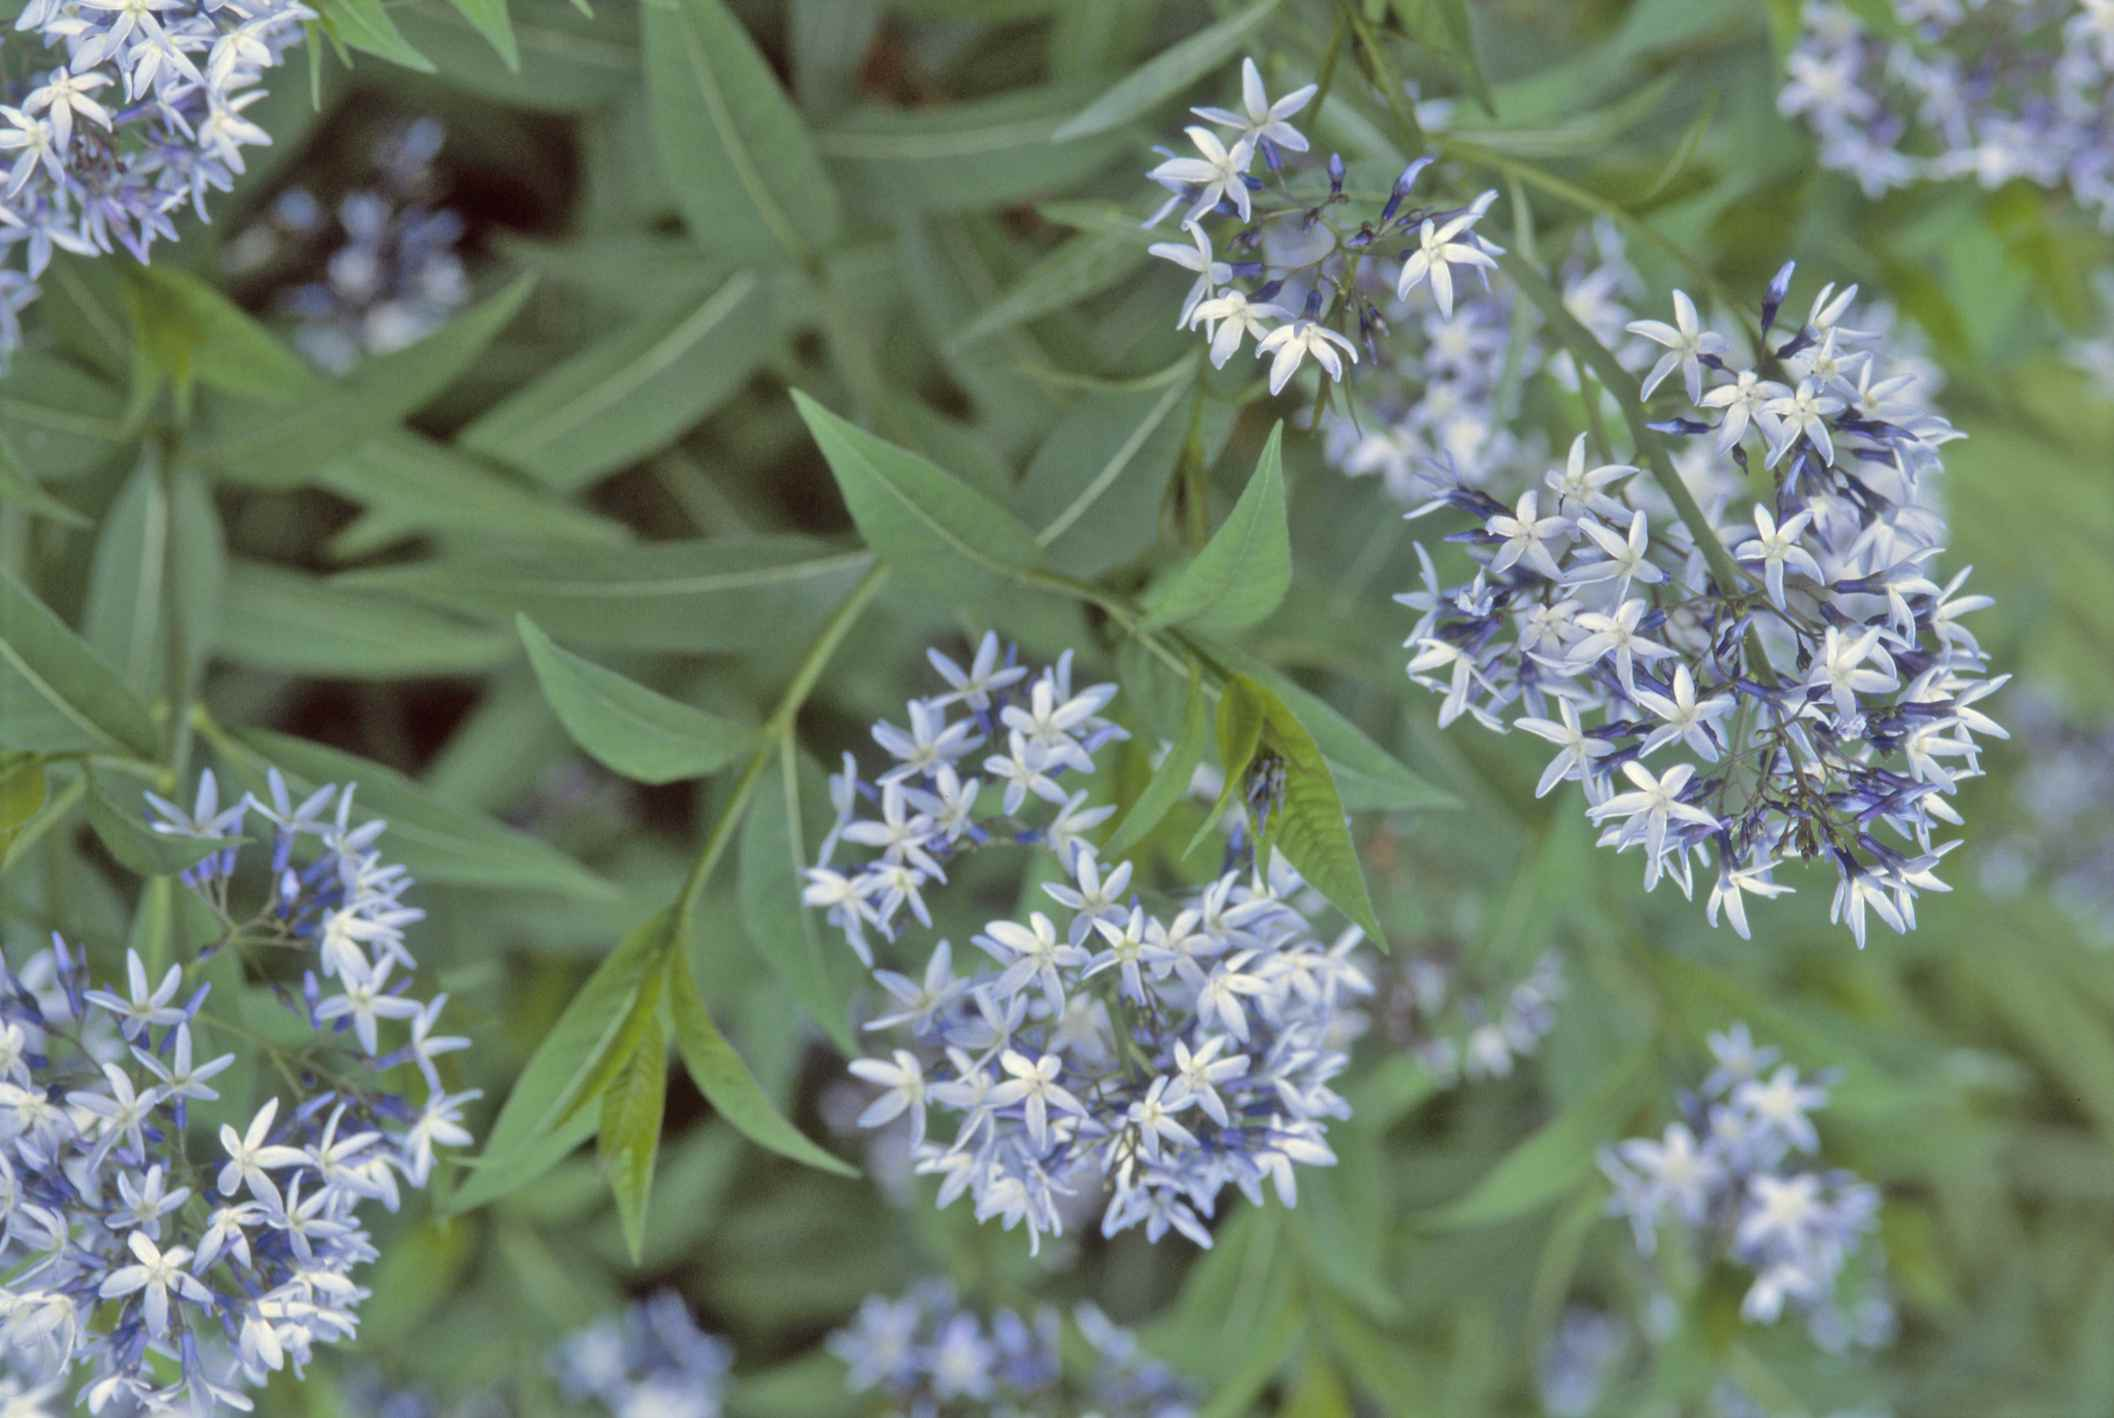 Blue star flower (Amsonia hubrichtii)